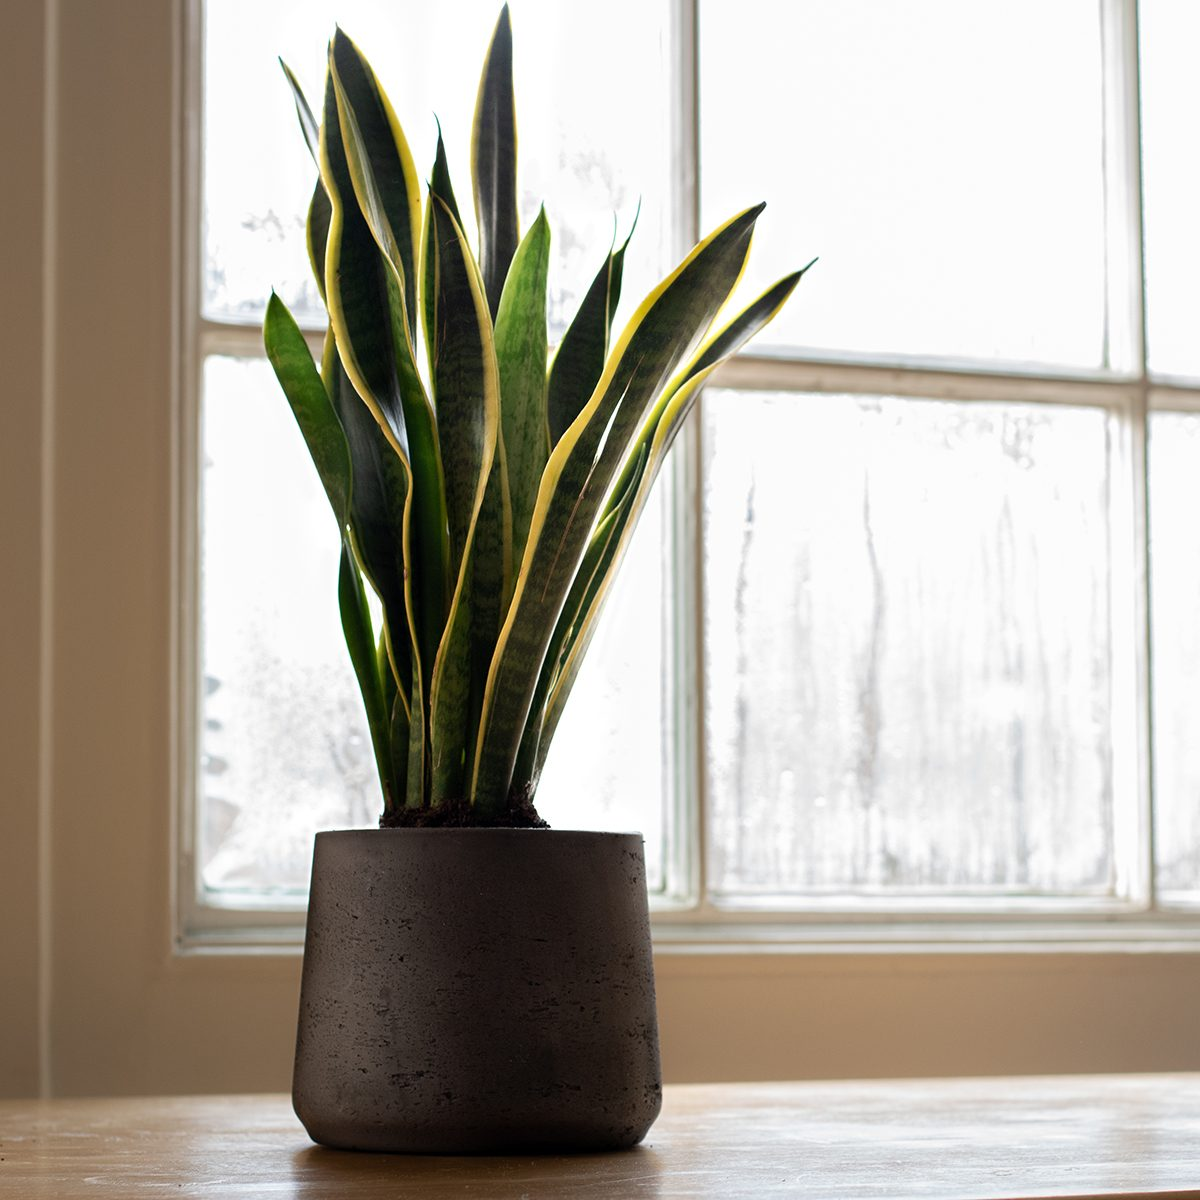 A Sansevieria trifasciata indoor plant, next to a nice white interior.